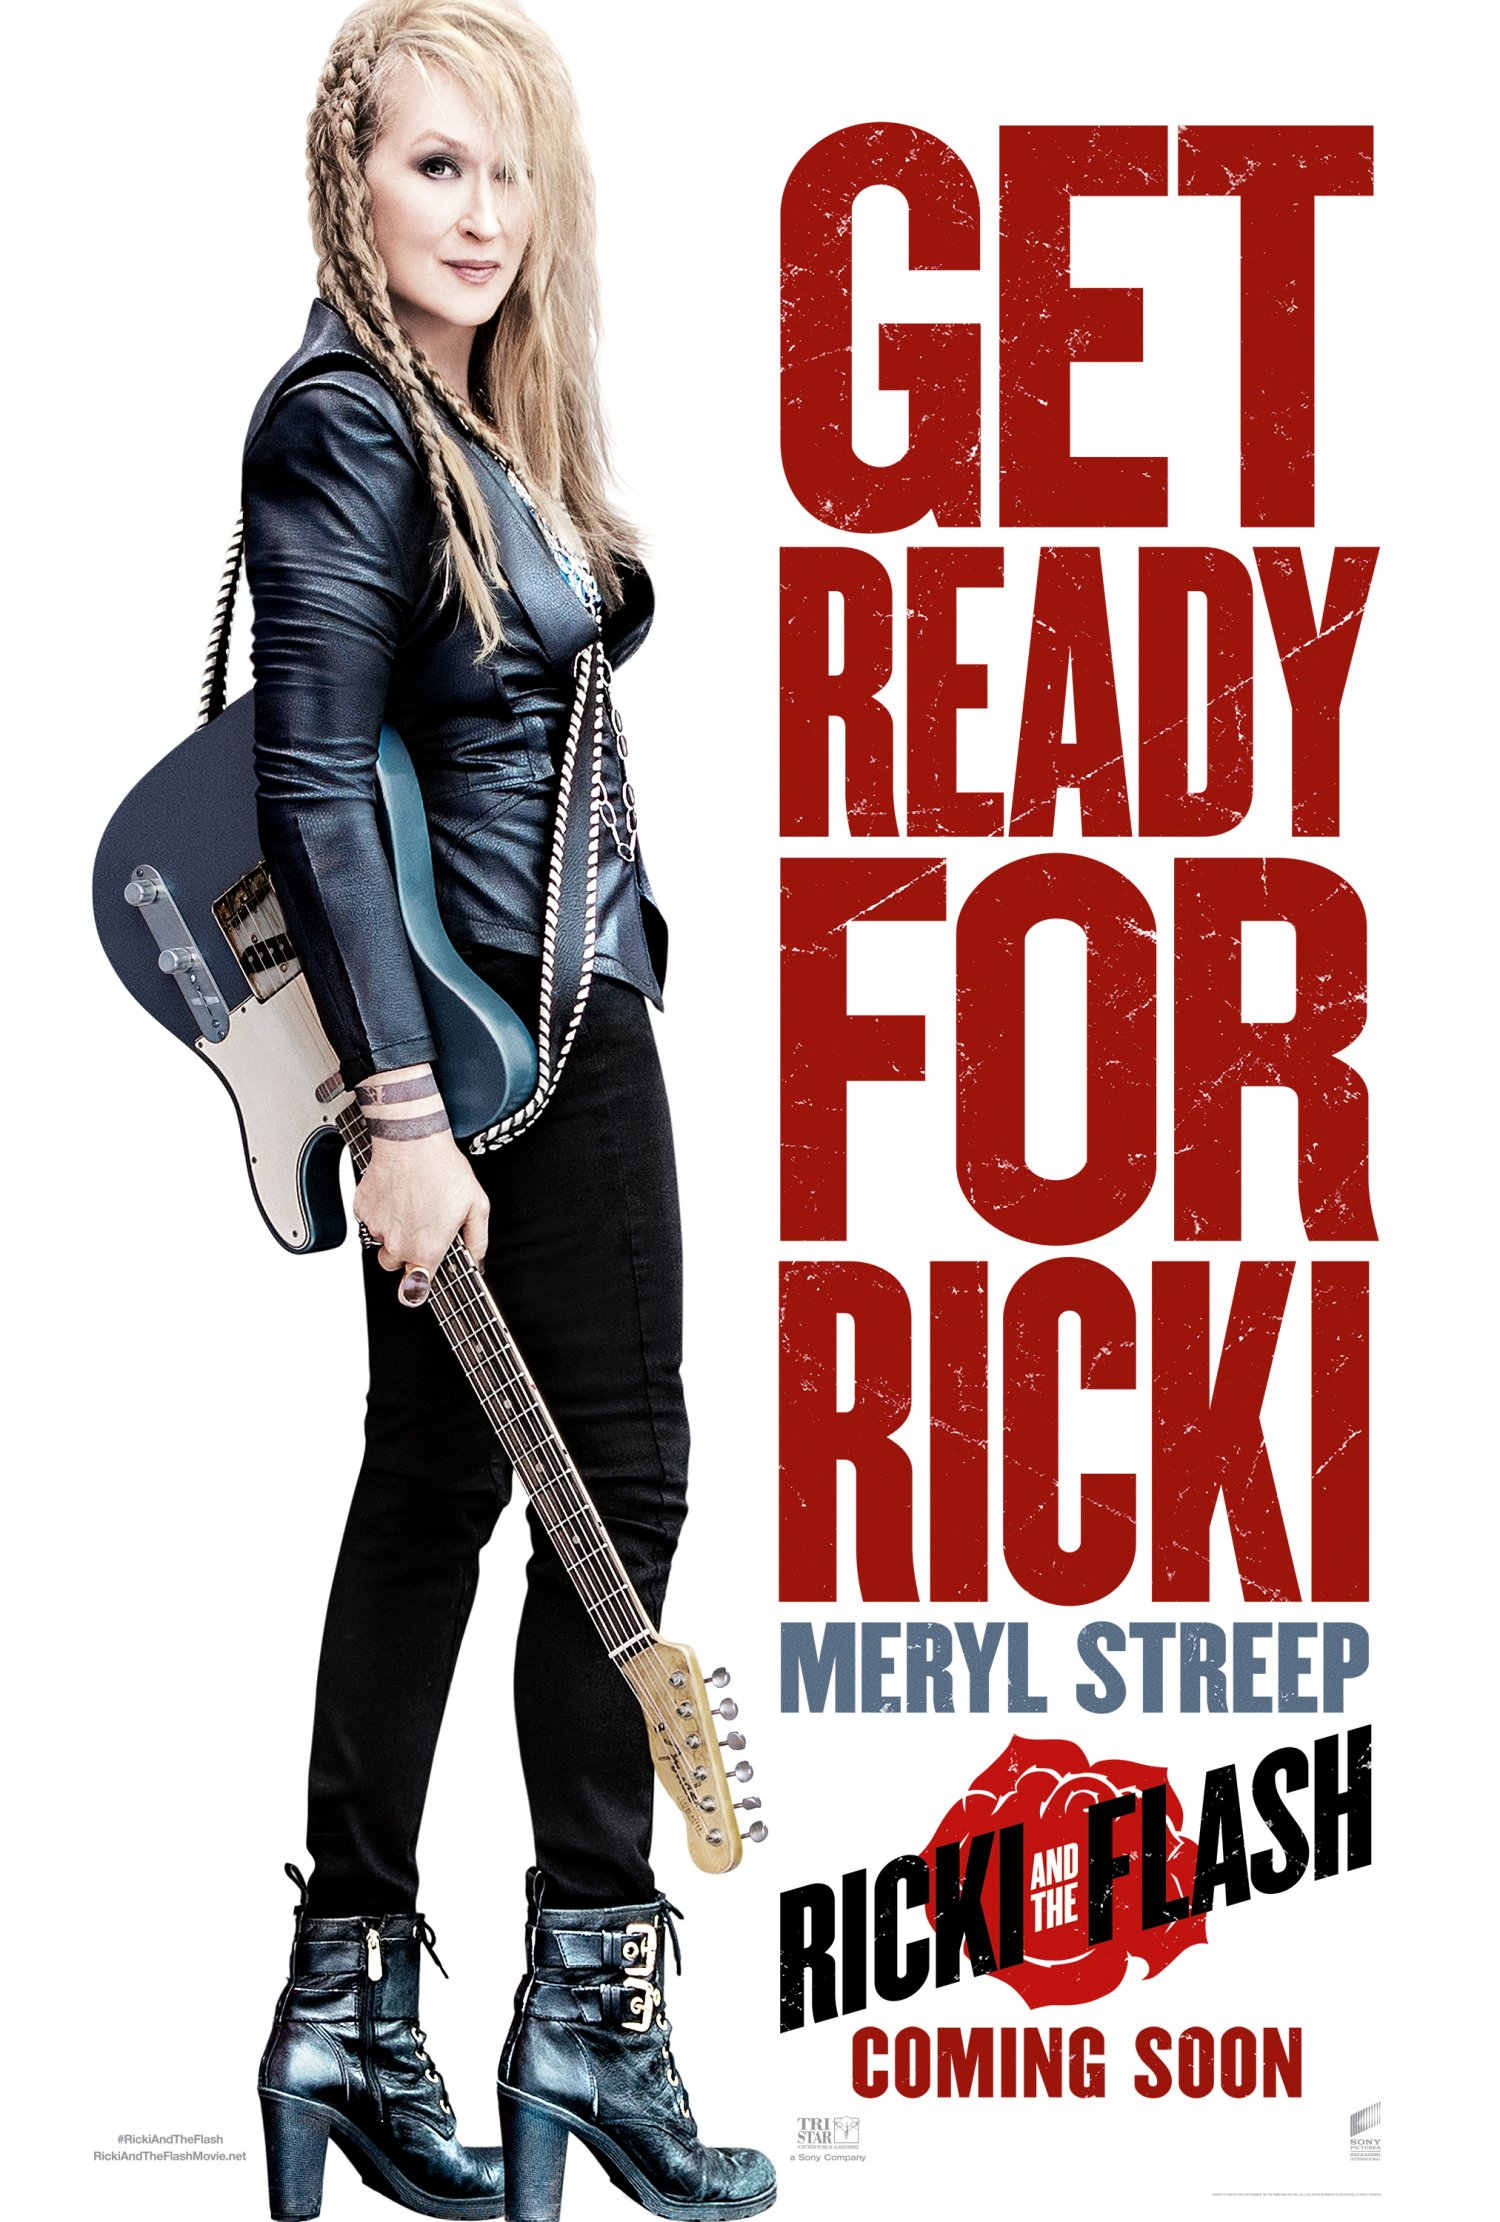 Rickie And The Flash poster